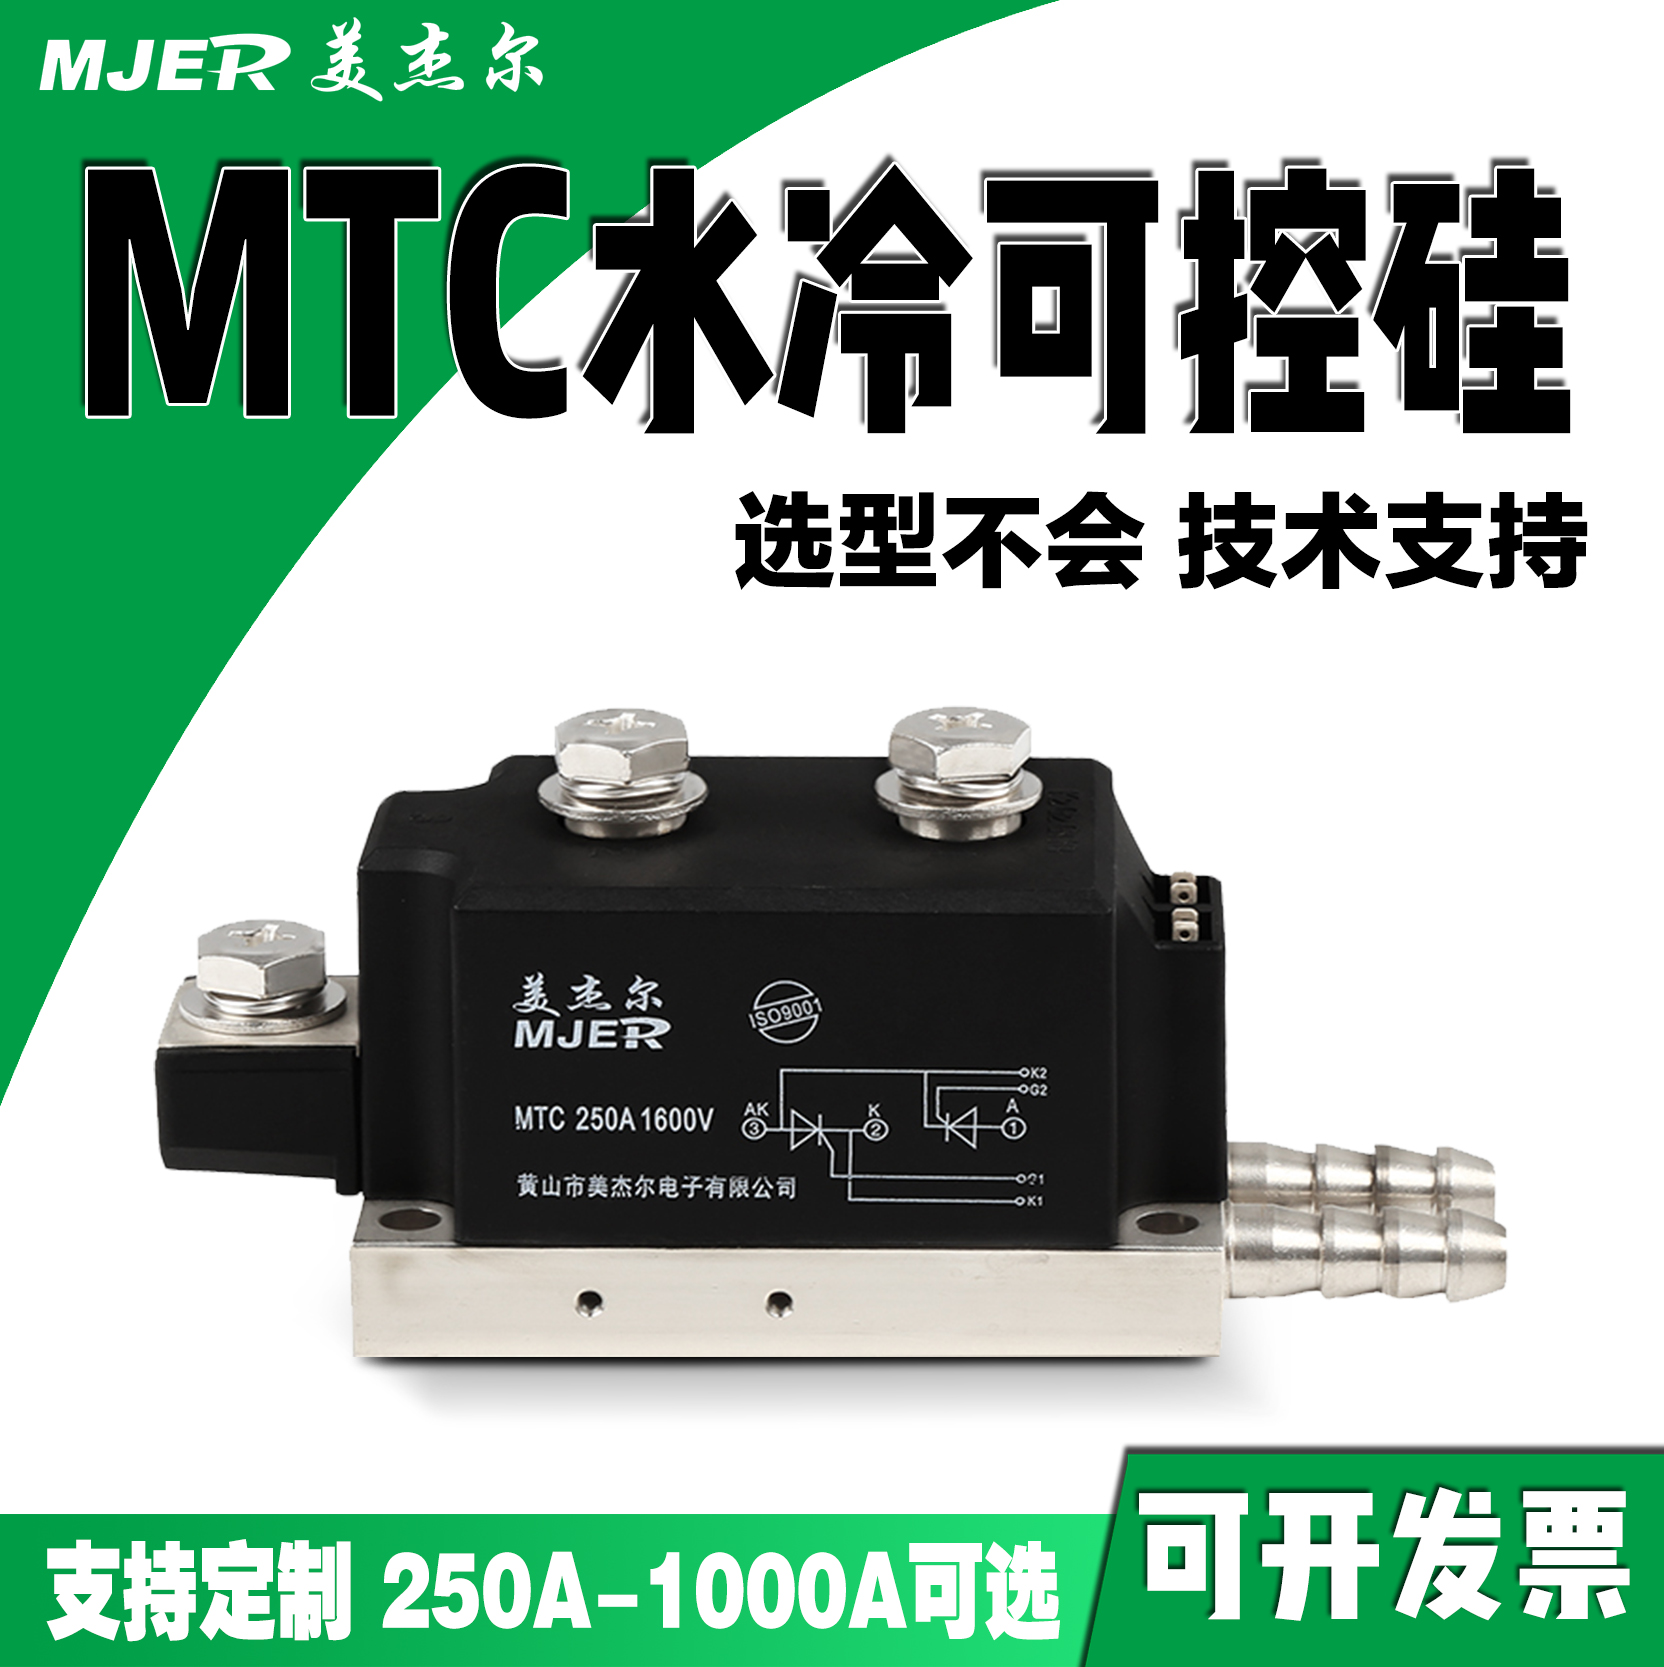 MTC300A1600V MTX300A Thyristor semiconductor control rectifier module High-power water-cooled inverter soft start